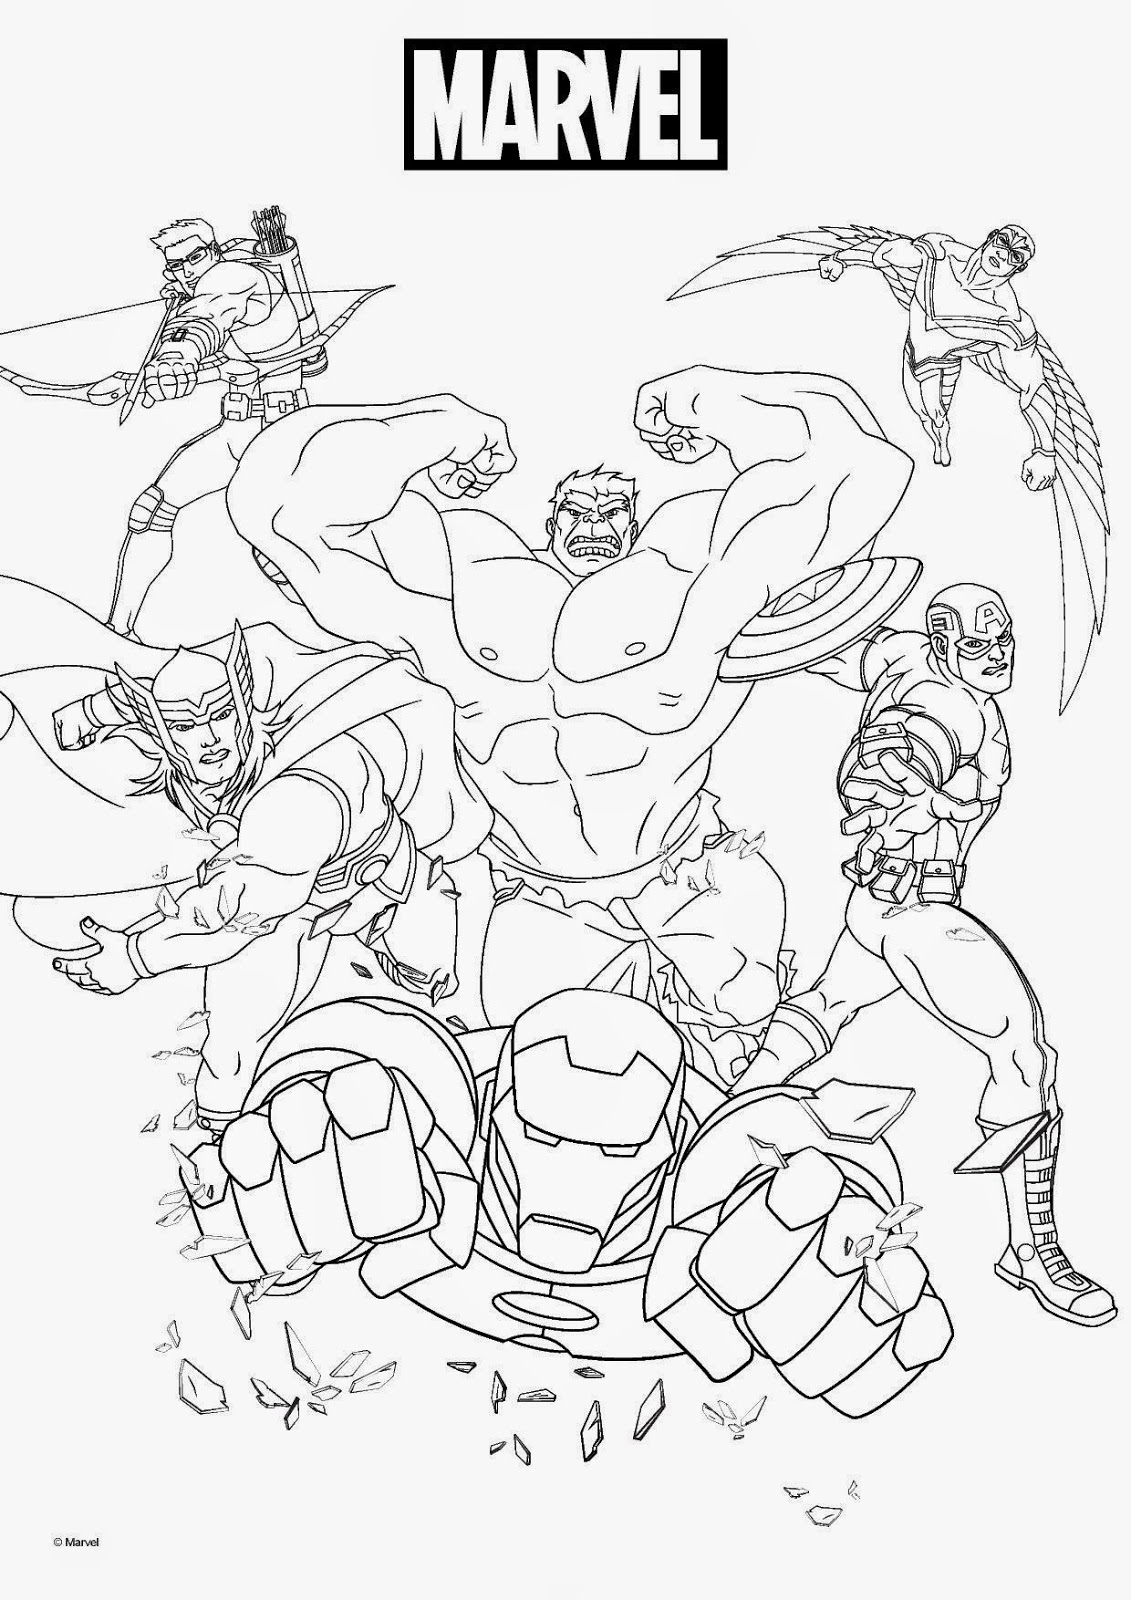 marvel coloring pictures marvel coloring pages best coloring pages for kids marvel coloring pictures